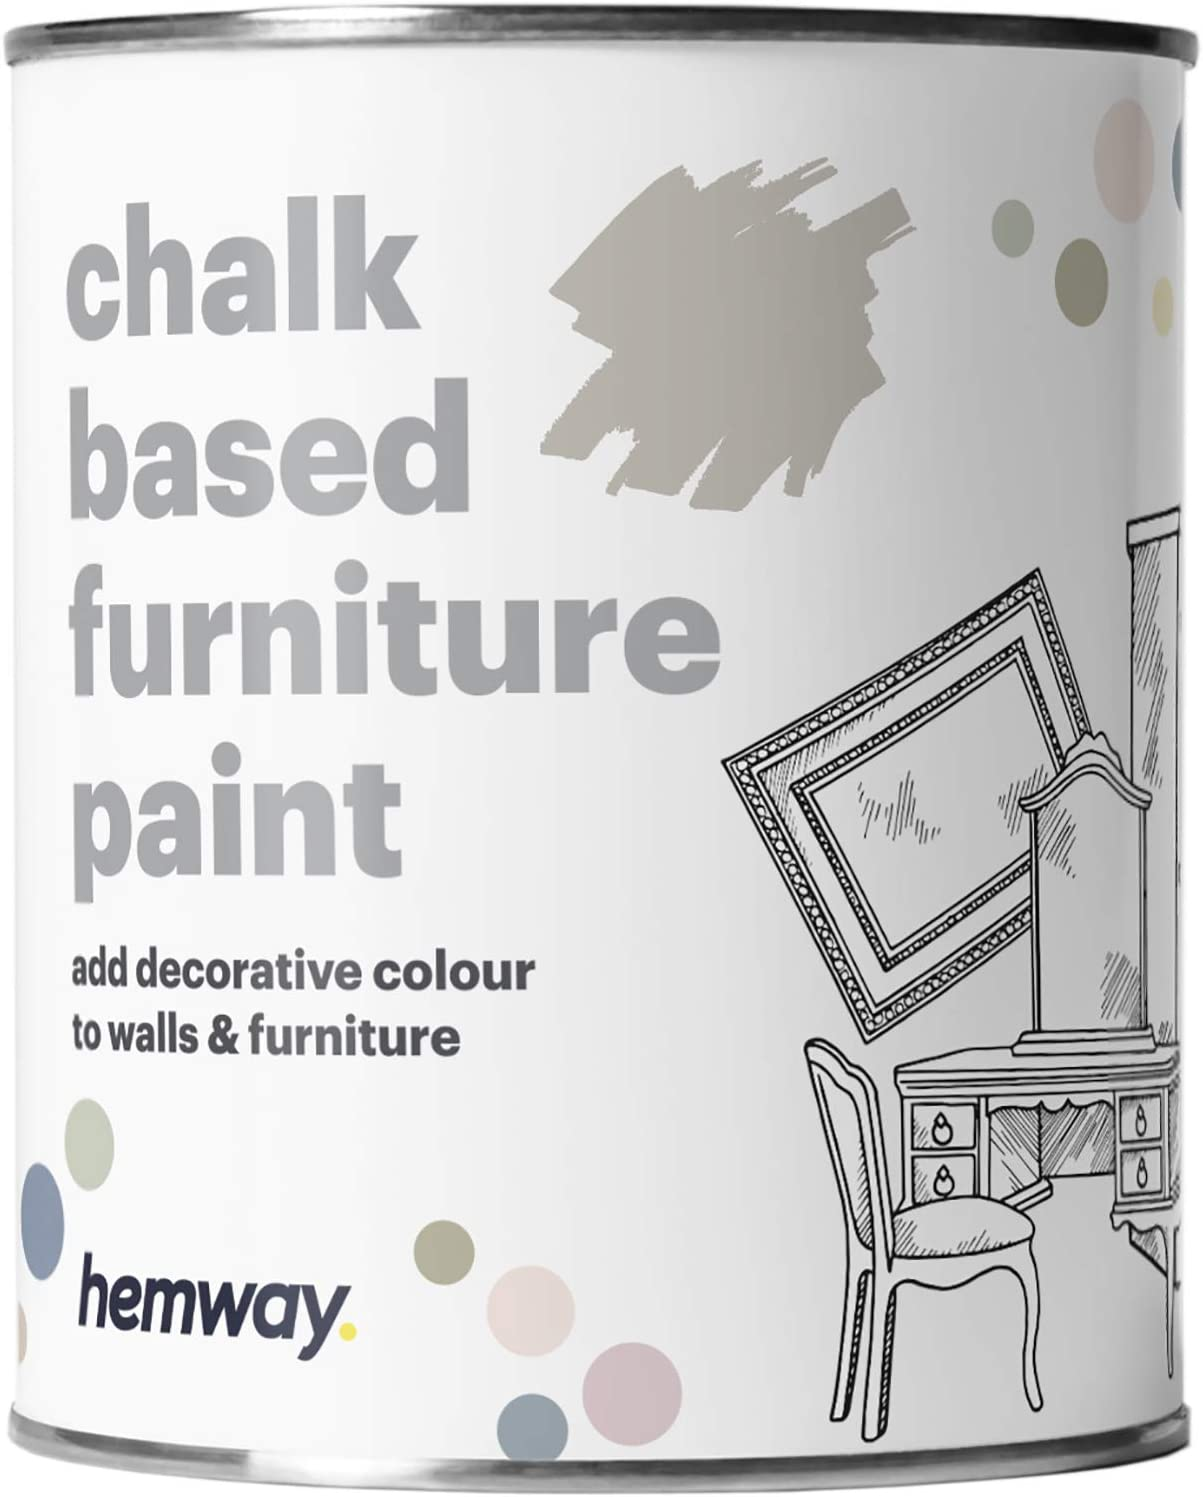 Hemway Stone Chalk Based Furniture Paint Matt Finish Wall and Upcycle DIY Home Improvement 1L / 35oz Shabby Chic Vintage Chalky (50+ Colours Available)